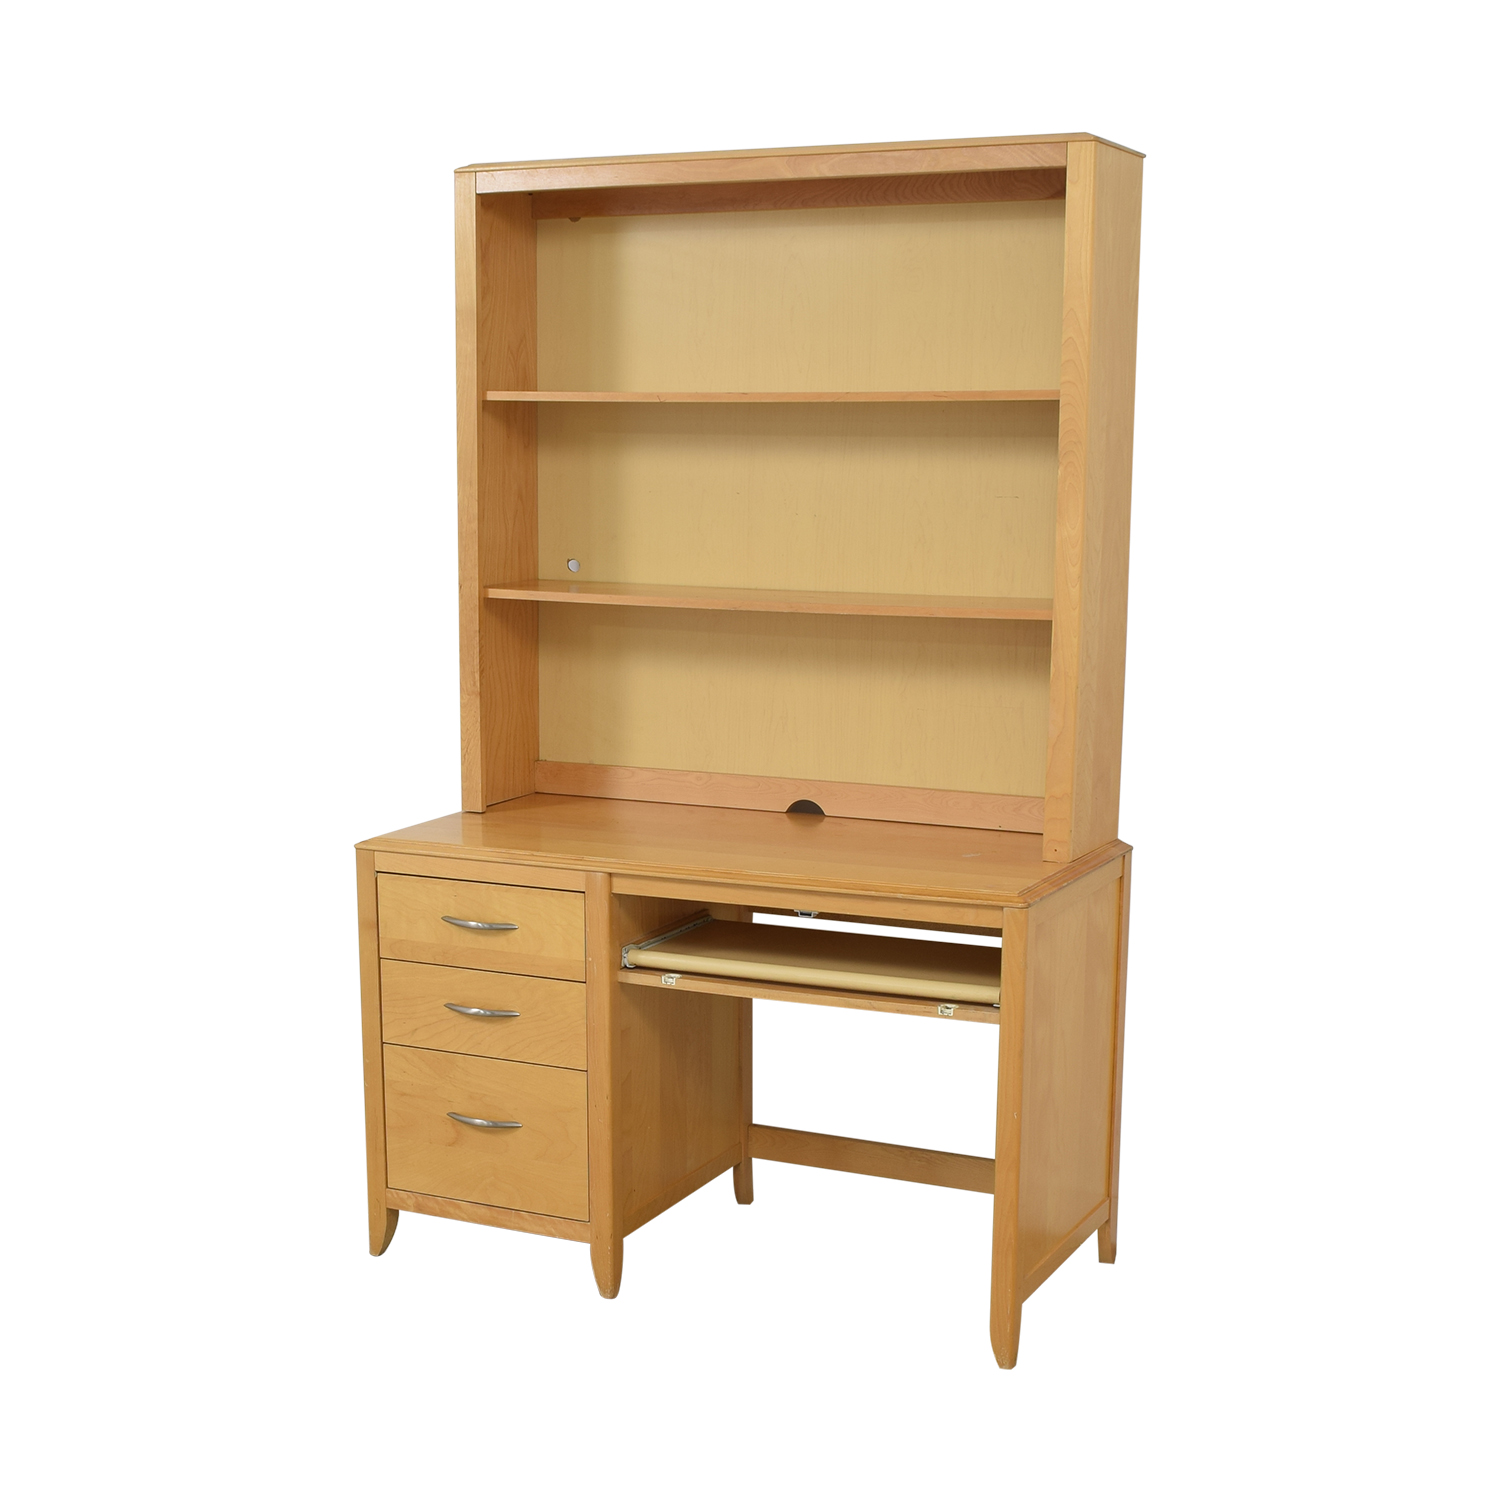 Nebraska Furniture Mart Nebraska Furniture Mart Desk with Hutch ct